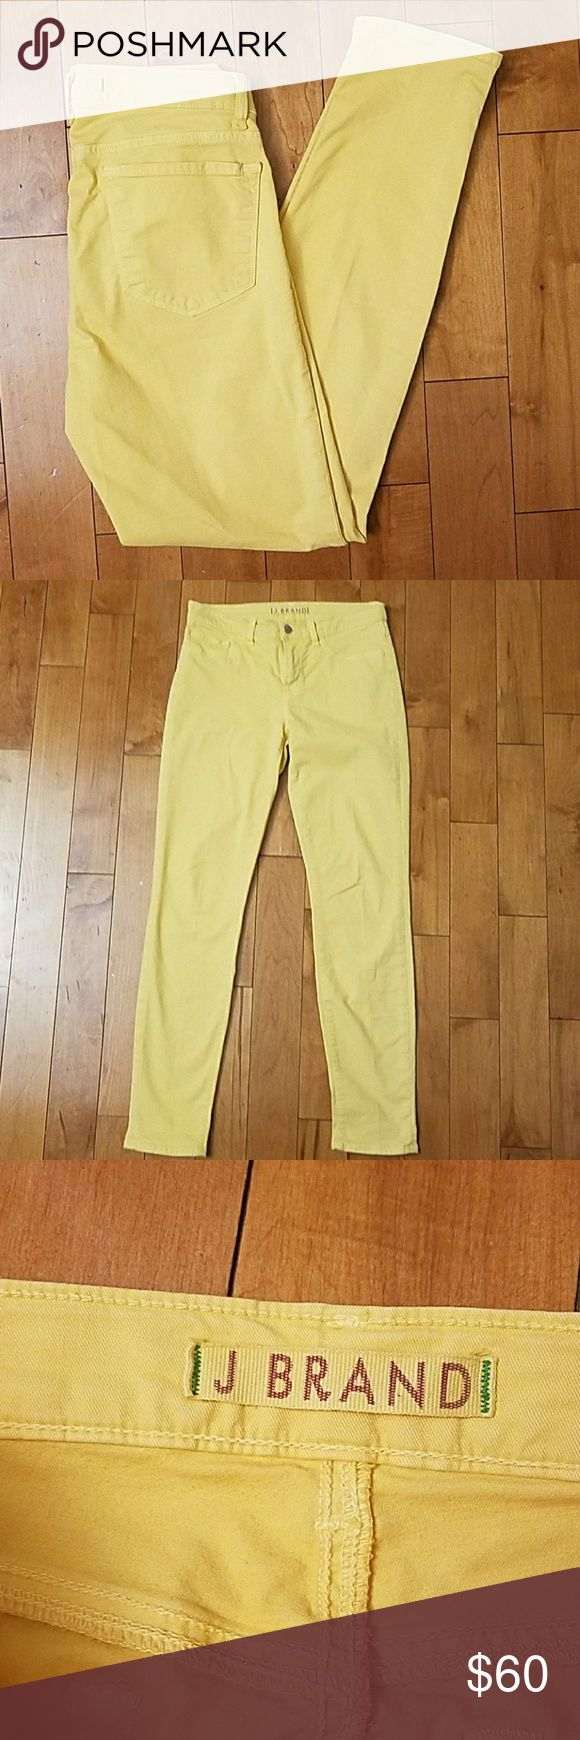 """J Brand Canary Yellow Skinny Jeans J Brand Canary Yellow Skinny Jeans.   Size 27.  The oerfect sunnt yellow color for spring and summer!  98% cotton,  2% lycra.  14.5"""" across the waist.   29"""" inseam. J Brand Jeans Skinny"""